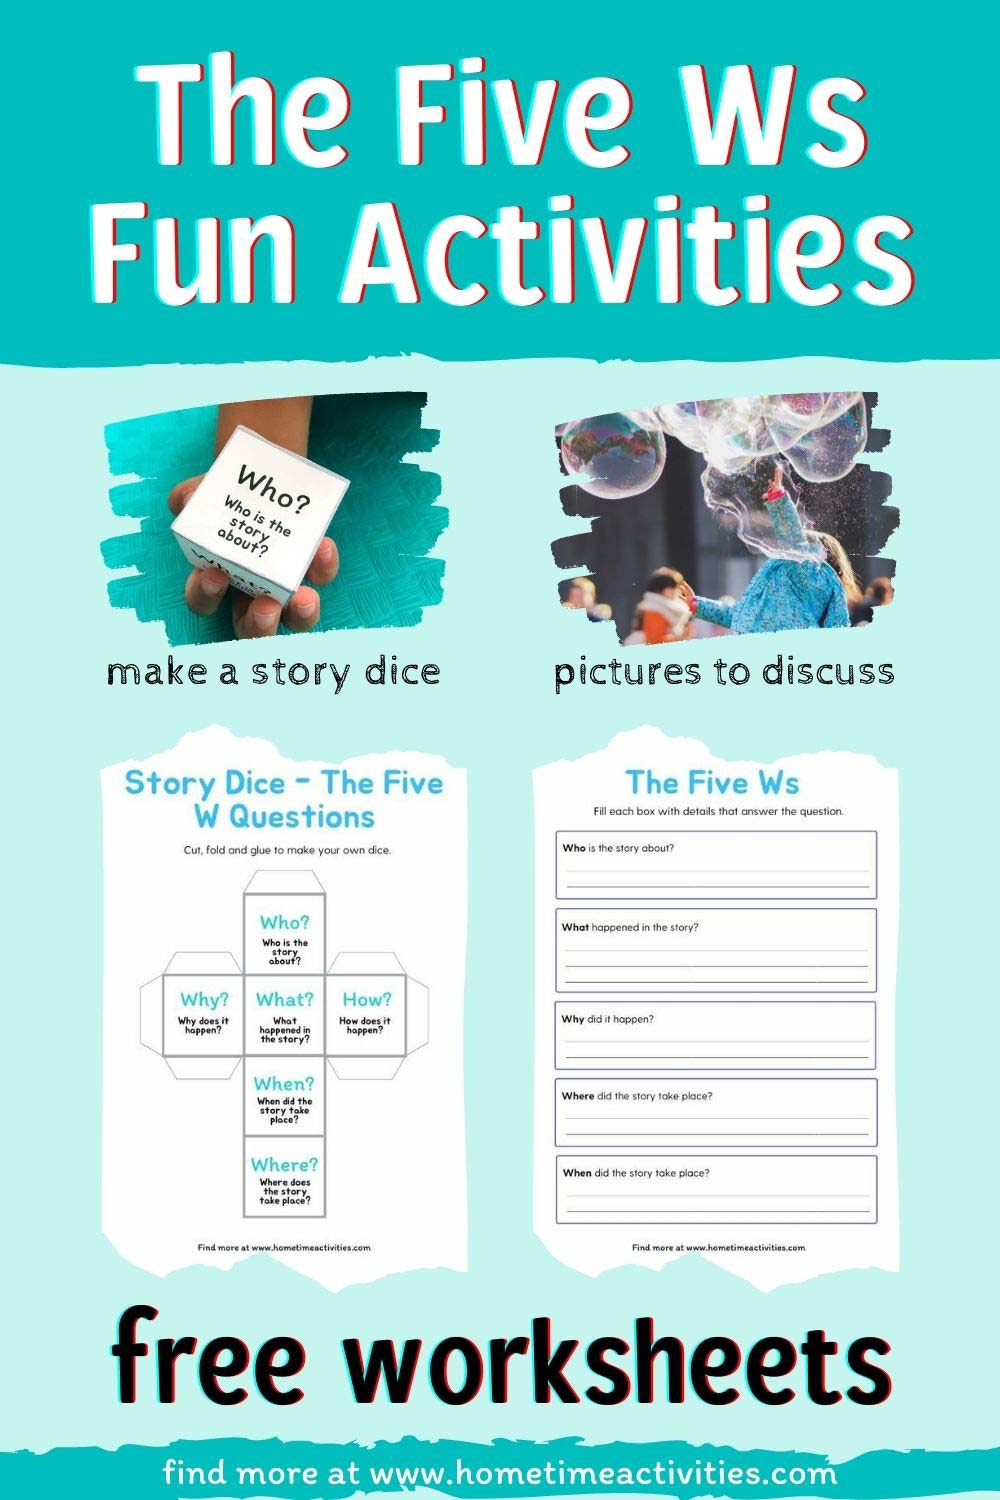 The Five Ws - Fun Activities for Kids with Free Worksheets - Pinterest collage to show the activities